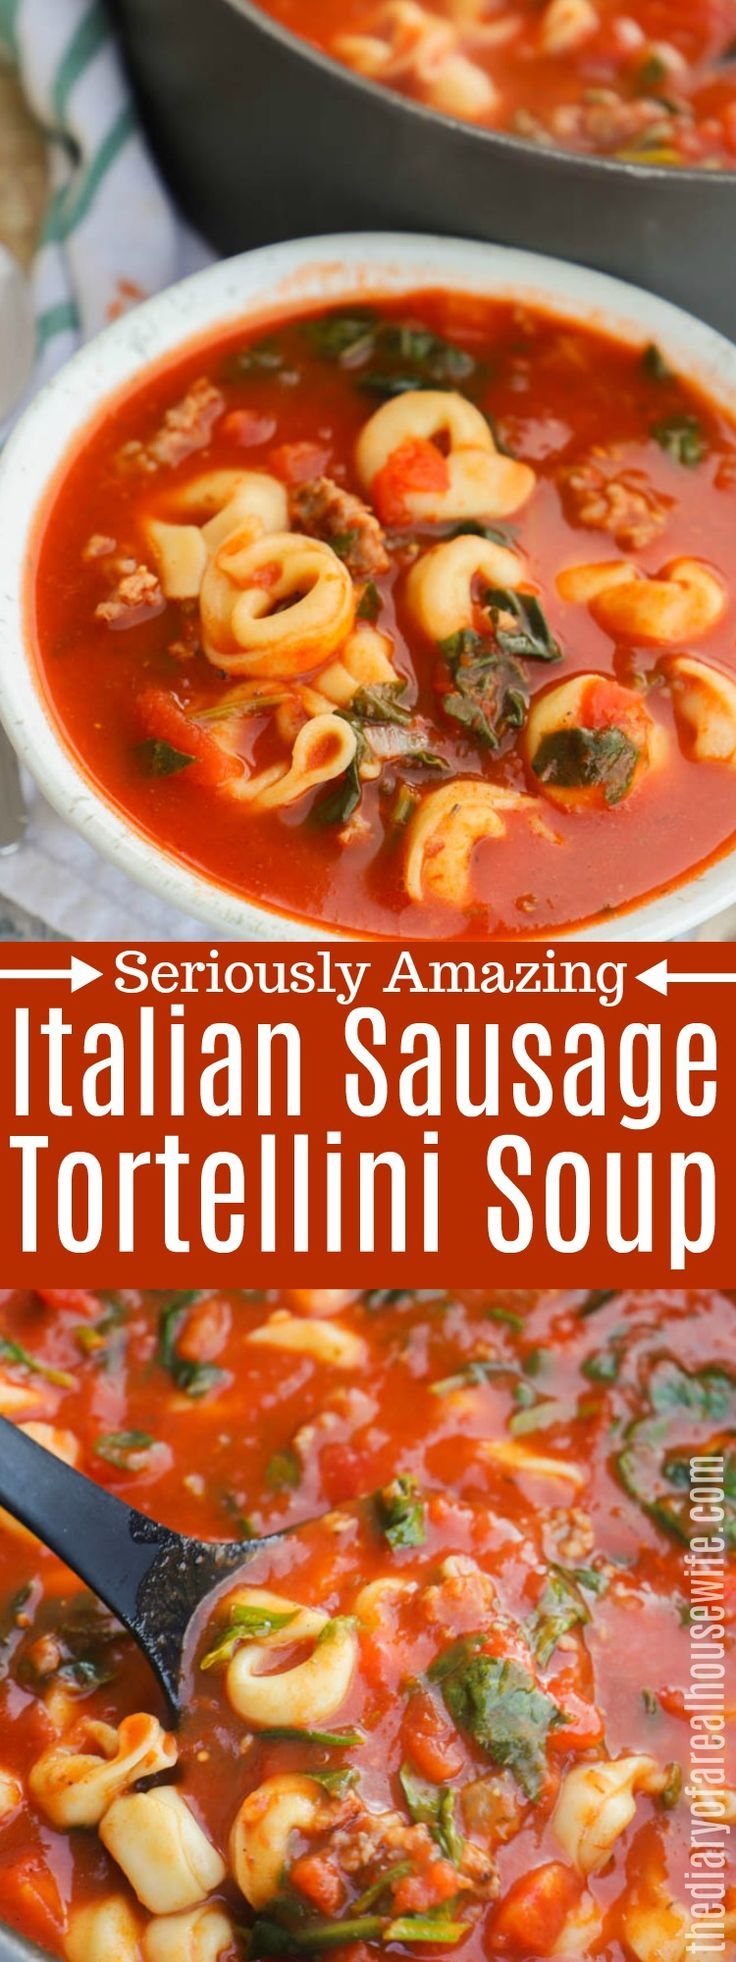 THIS SOUP! Y'all it is so good, you have to try it. Italian Sausage Tortellini S…